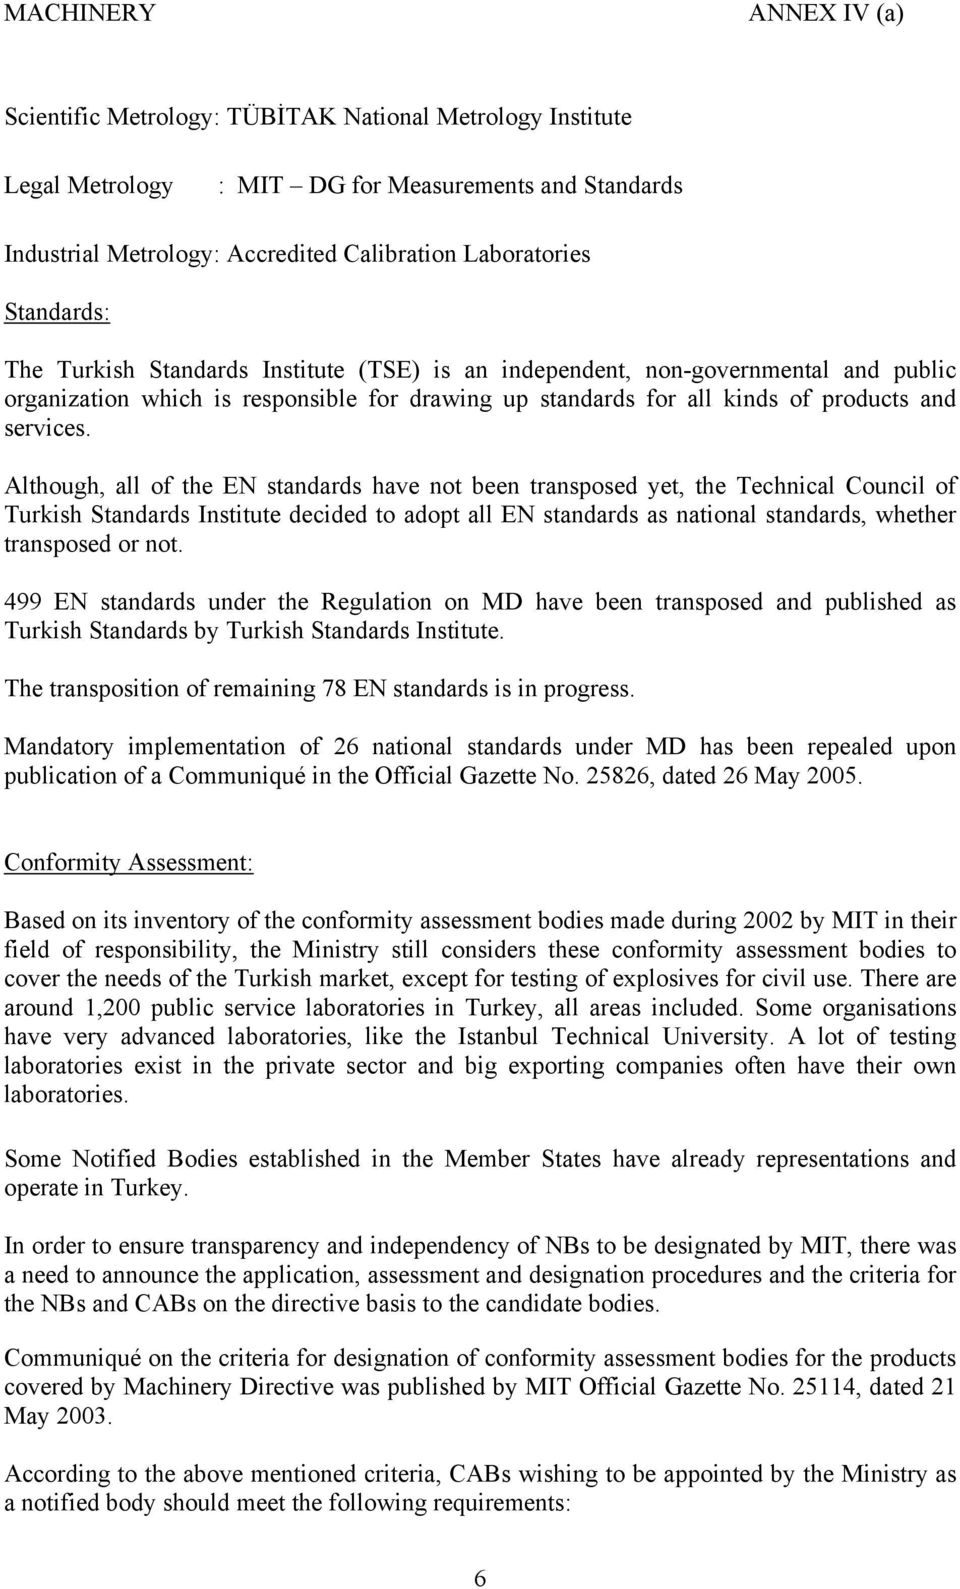 Although, all of the EN standards have not been transposed yet, the Technical Council of Turkish Standards Institute decided to adopt all EN standards as national standards, whether transposed or not.